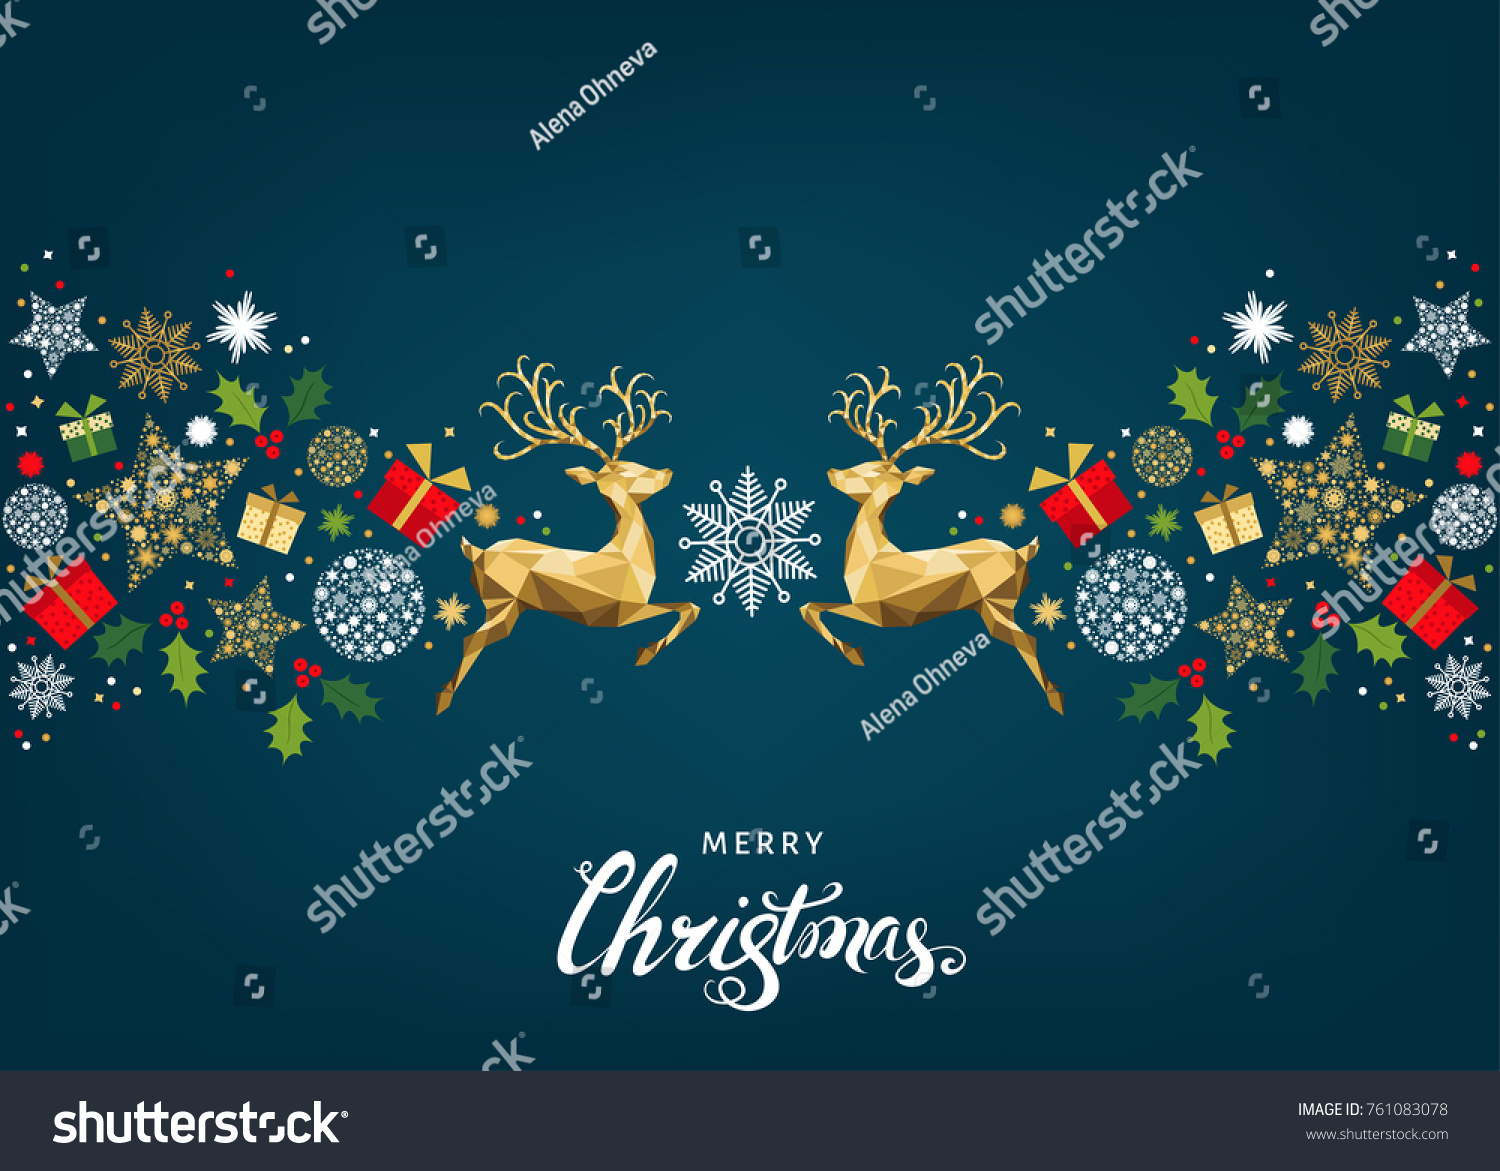 Christmas pattern with lettering and gold Xmas deer and  snowflakes.  Tree decoration. Happy New Year blue background.  Vector colorful  template  for greeting  card. #761083078